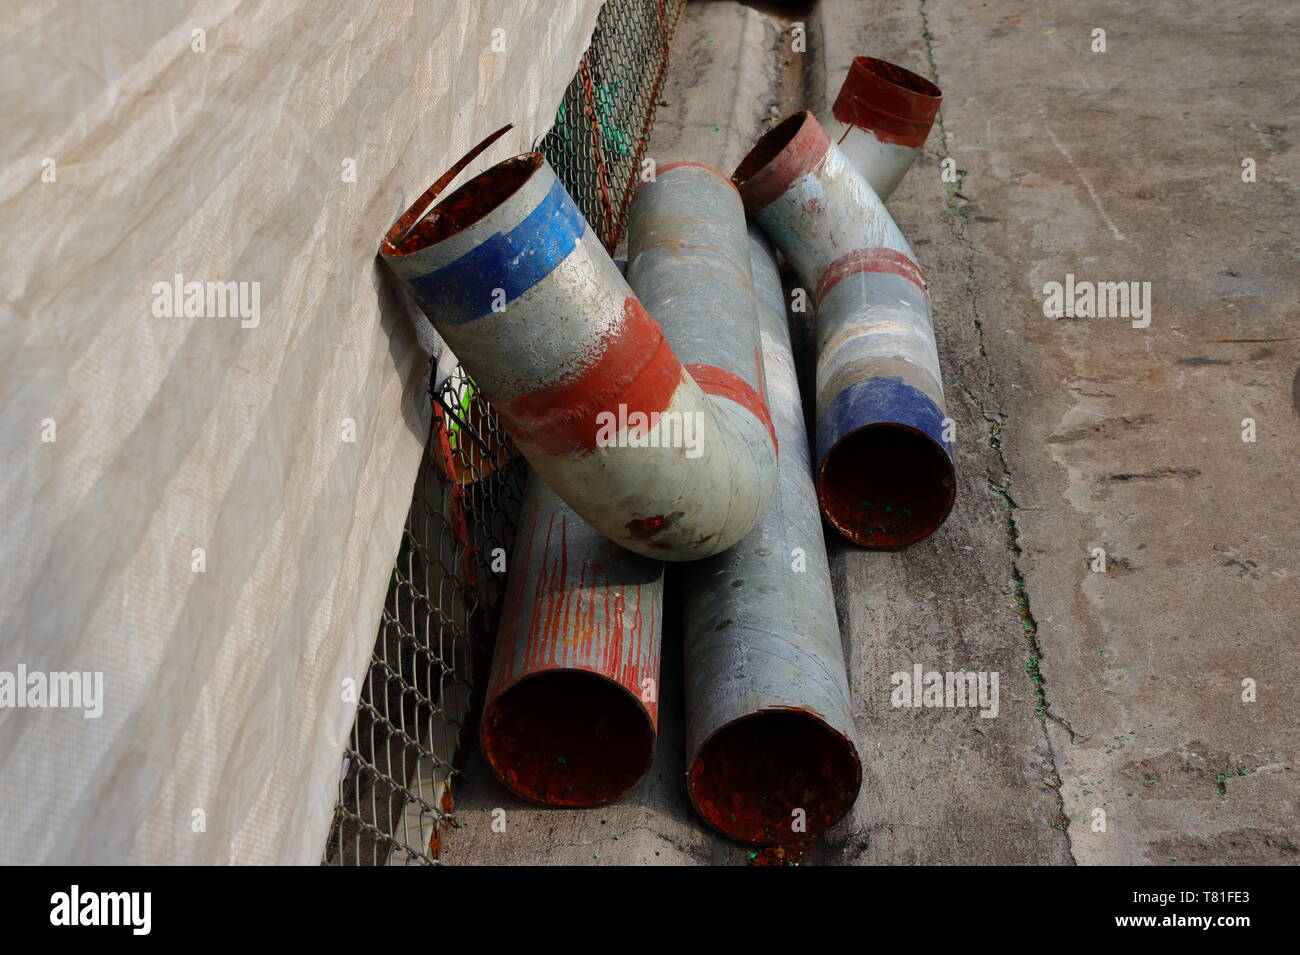 Closeup of many large metal pipes on concrete floor - Stock Image